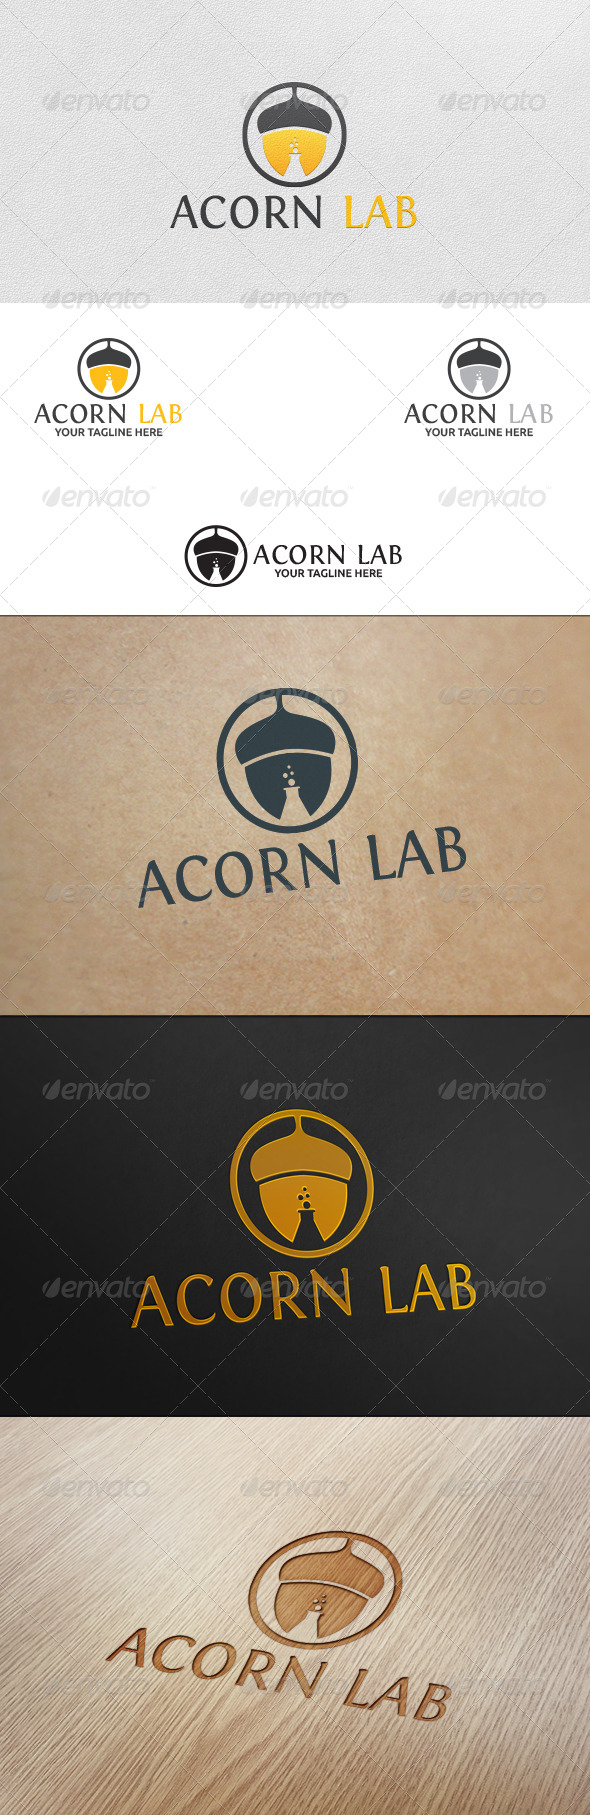 GraphicRiver Acorn Lab Logo Template 5680961